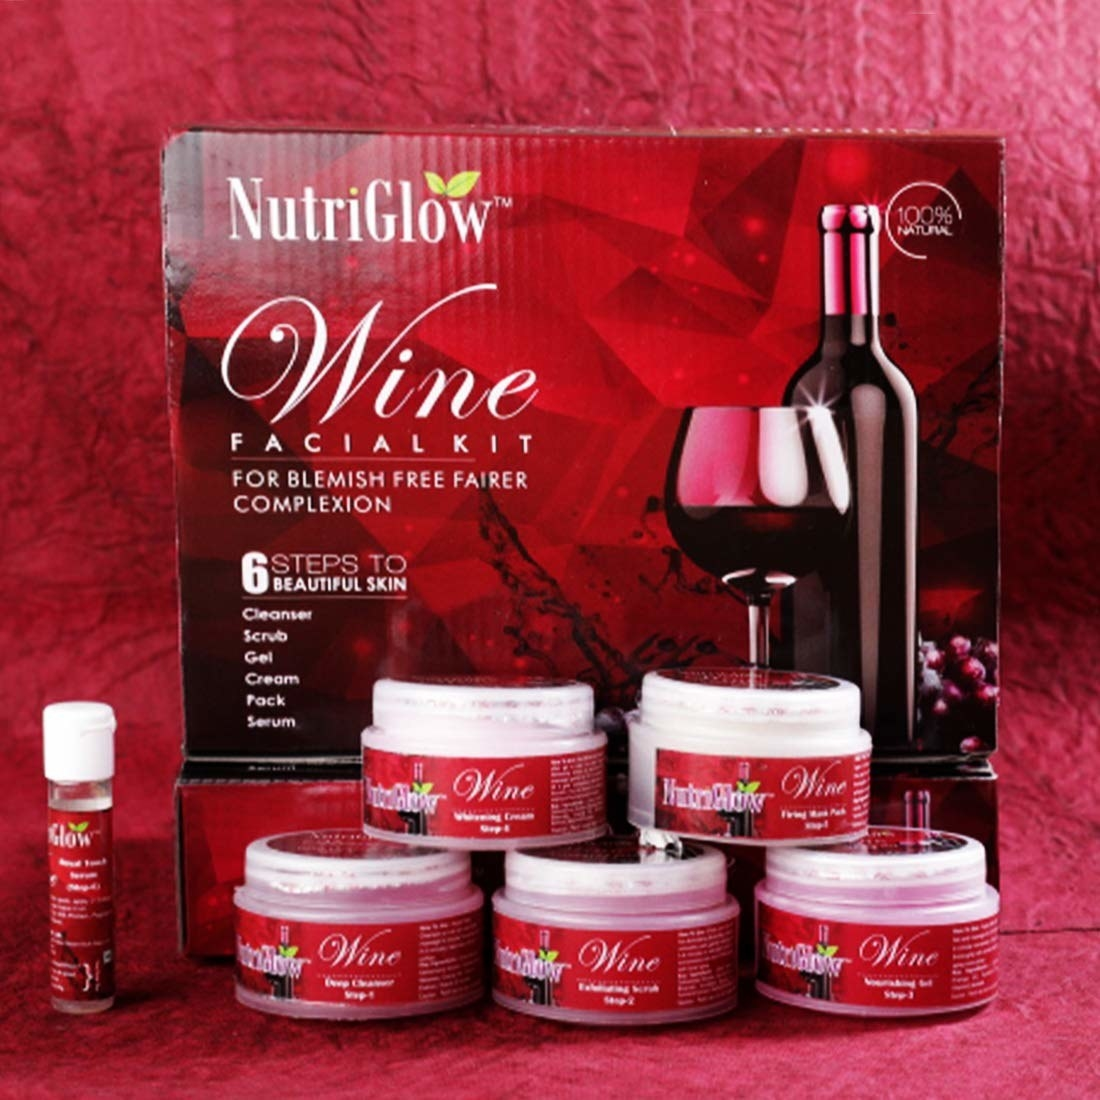 The full wine kit, showing the outbox and the 6 items inside.